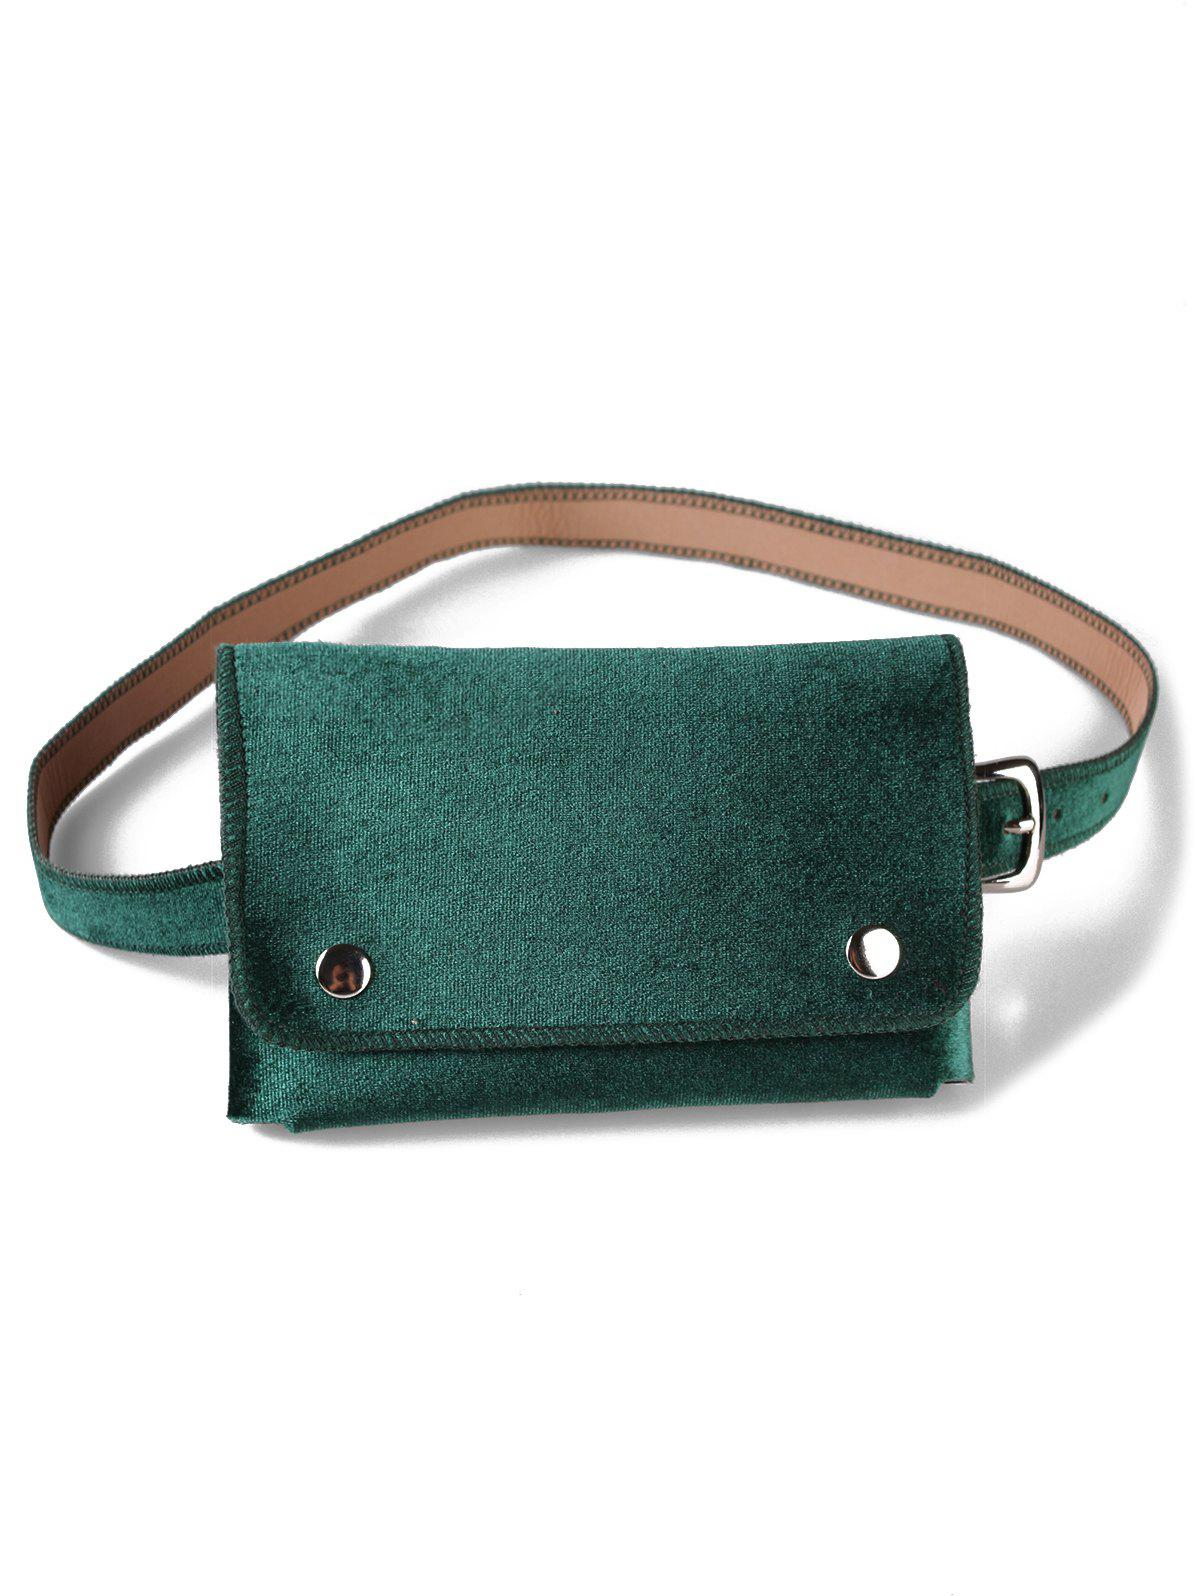 New Stylish Fanny Pack Hip Bum Belt Bag